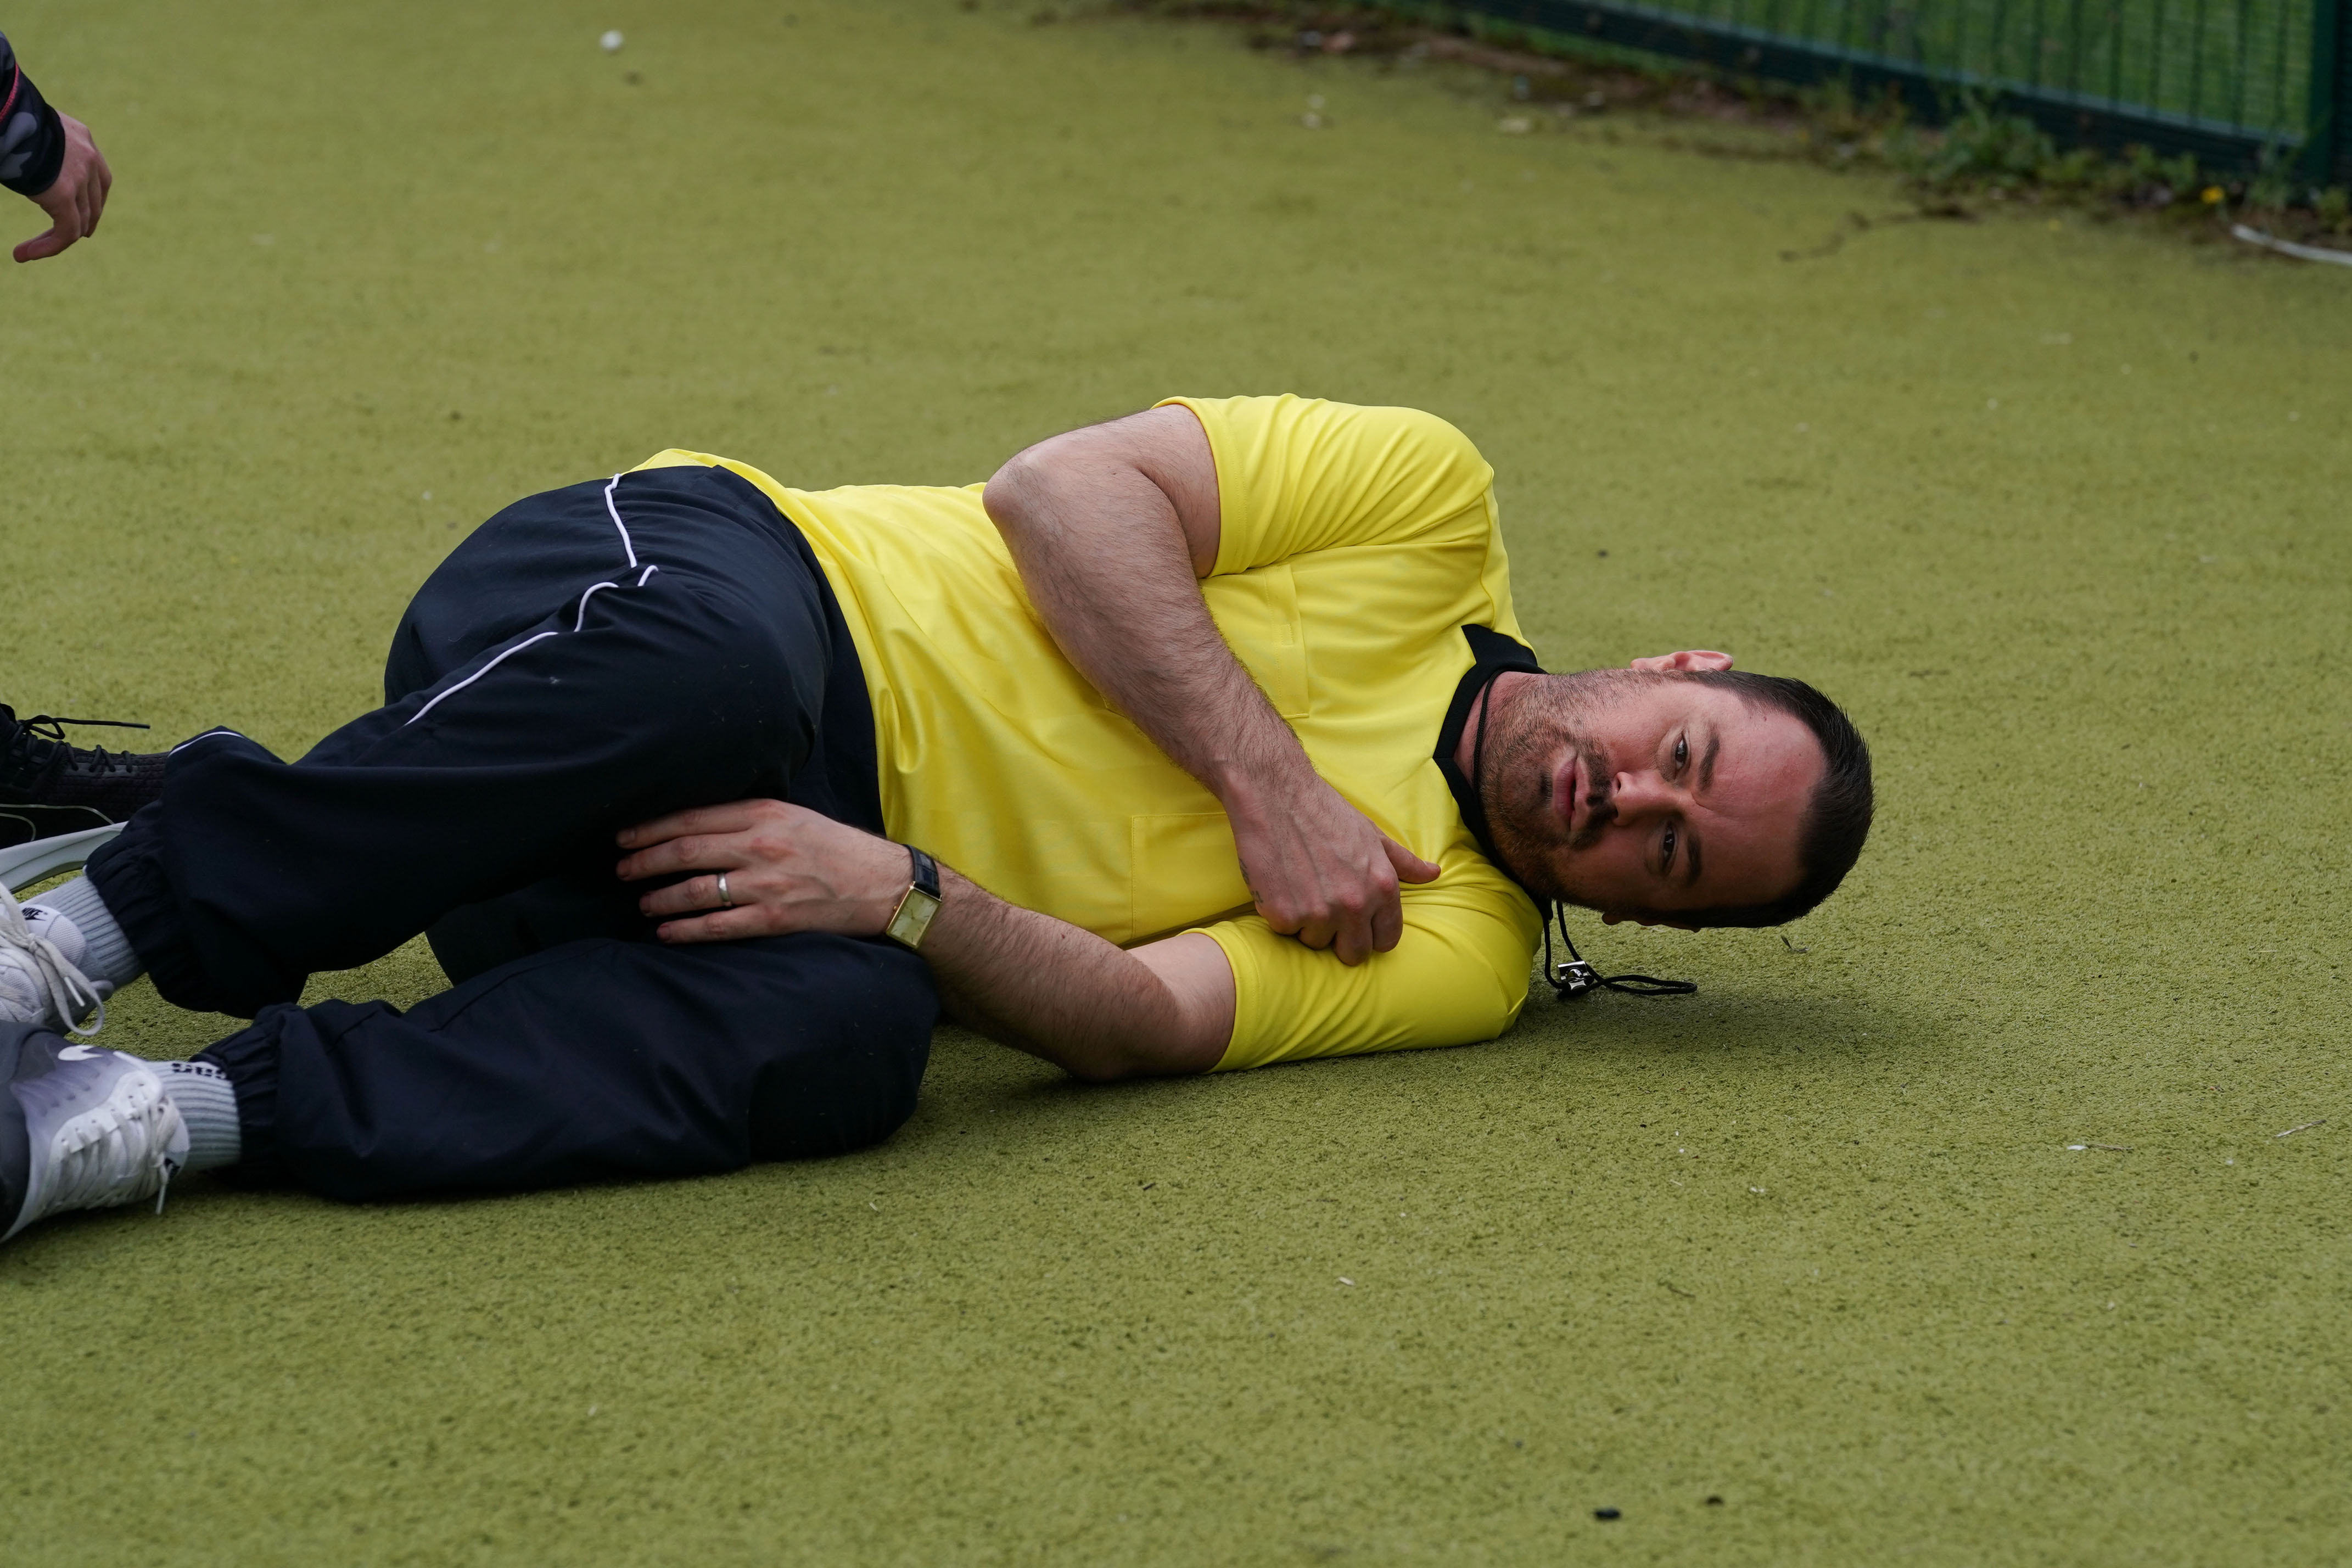 EastEnders SPOILER: Mick collapses on the football pitch